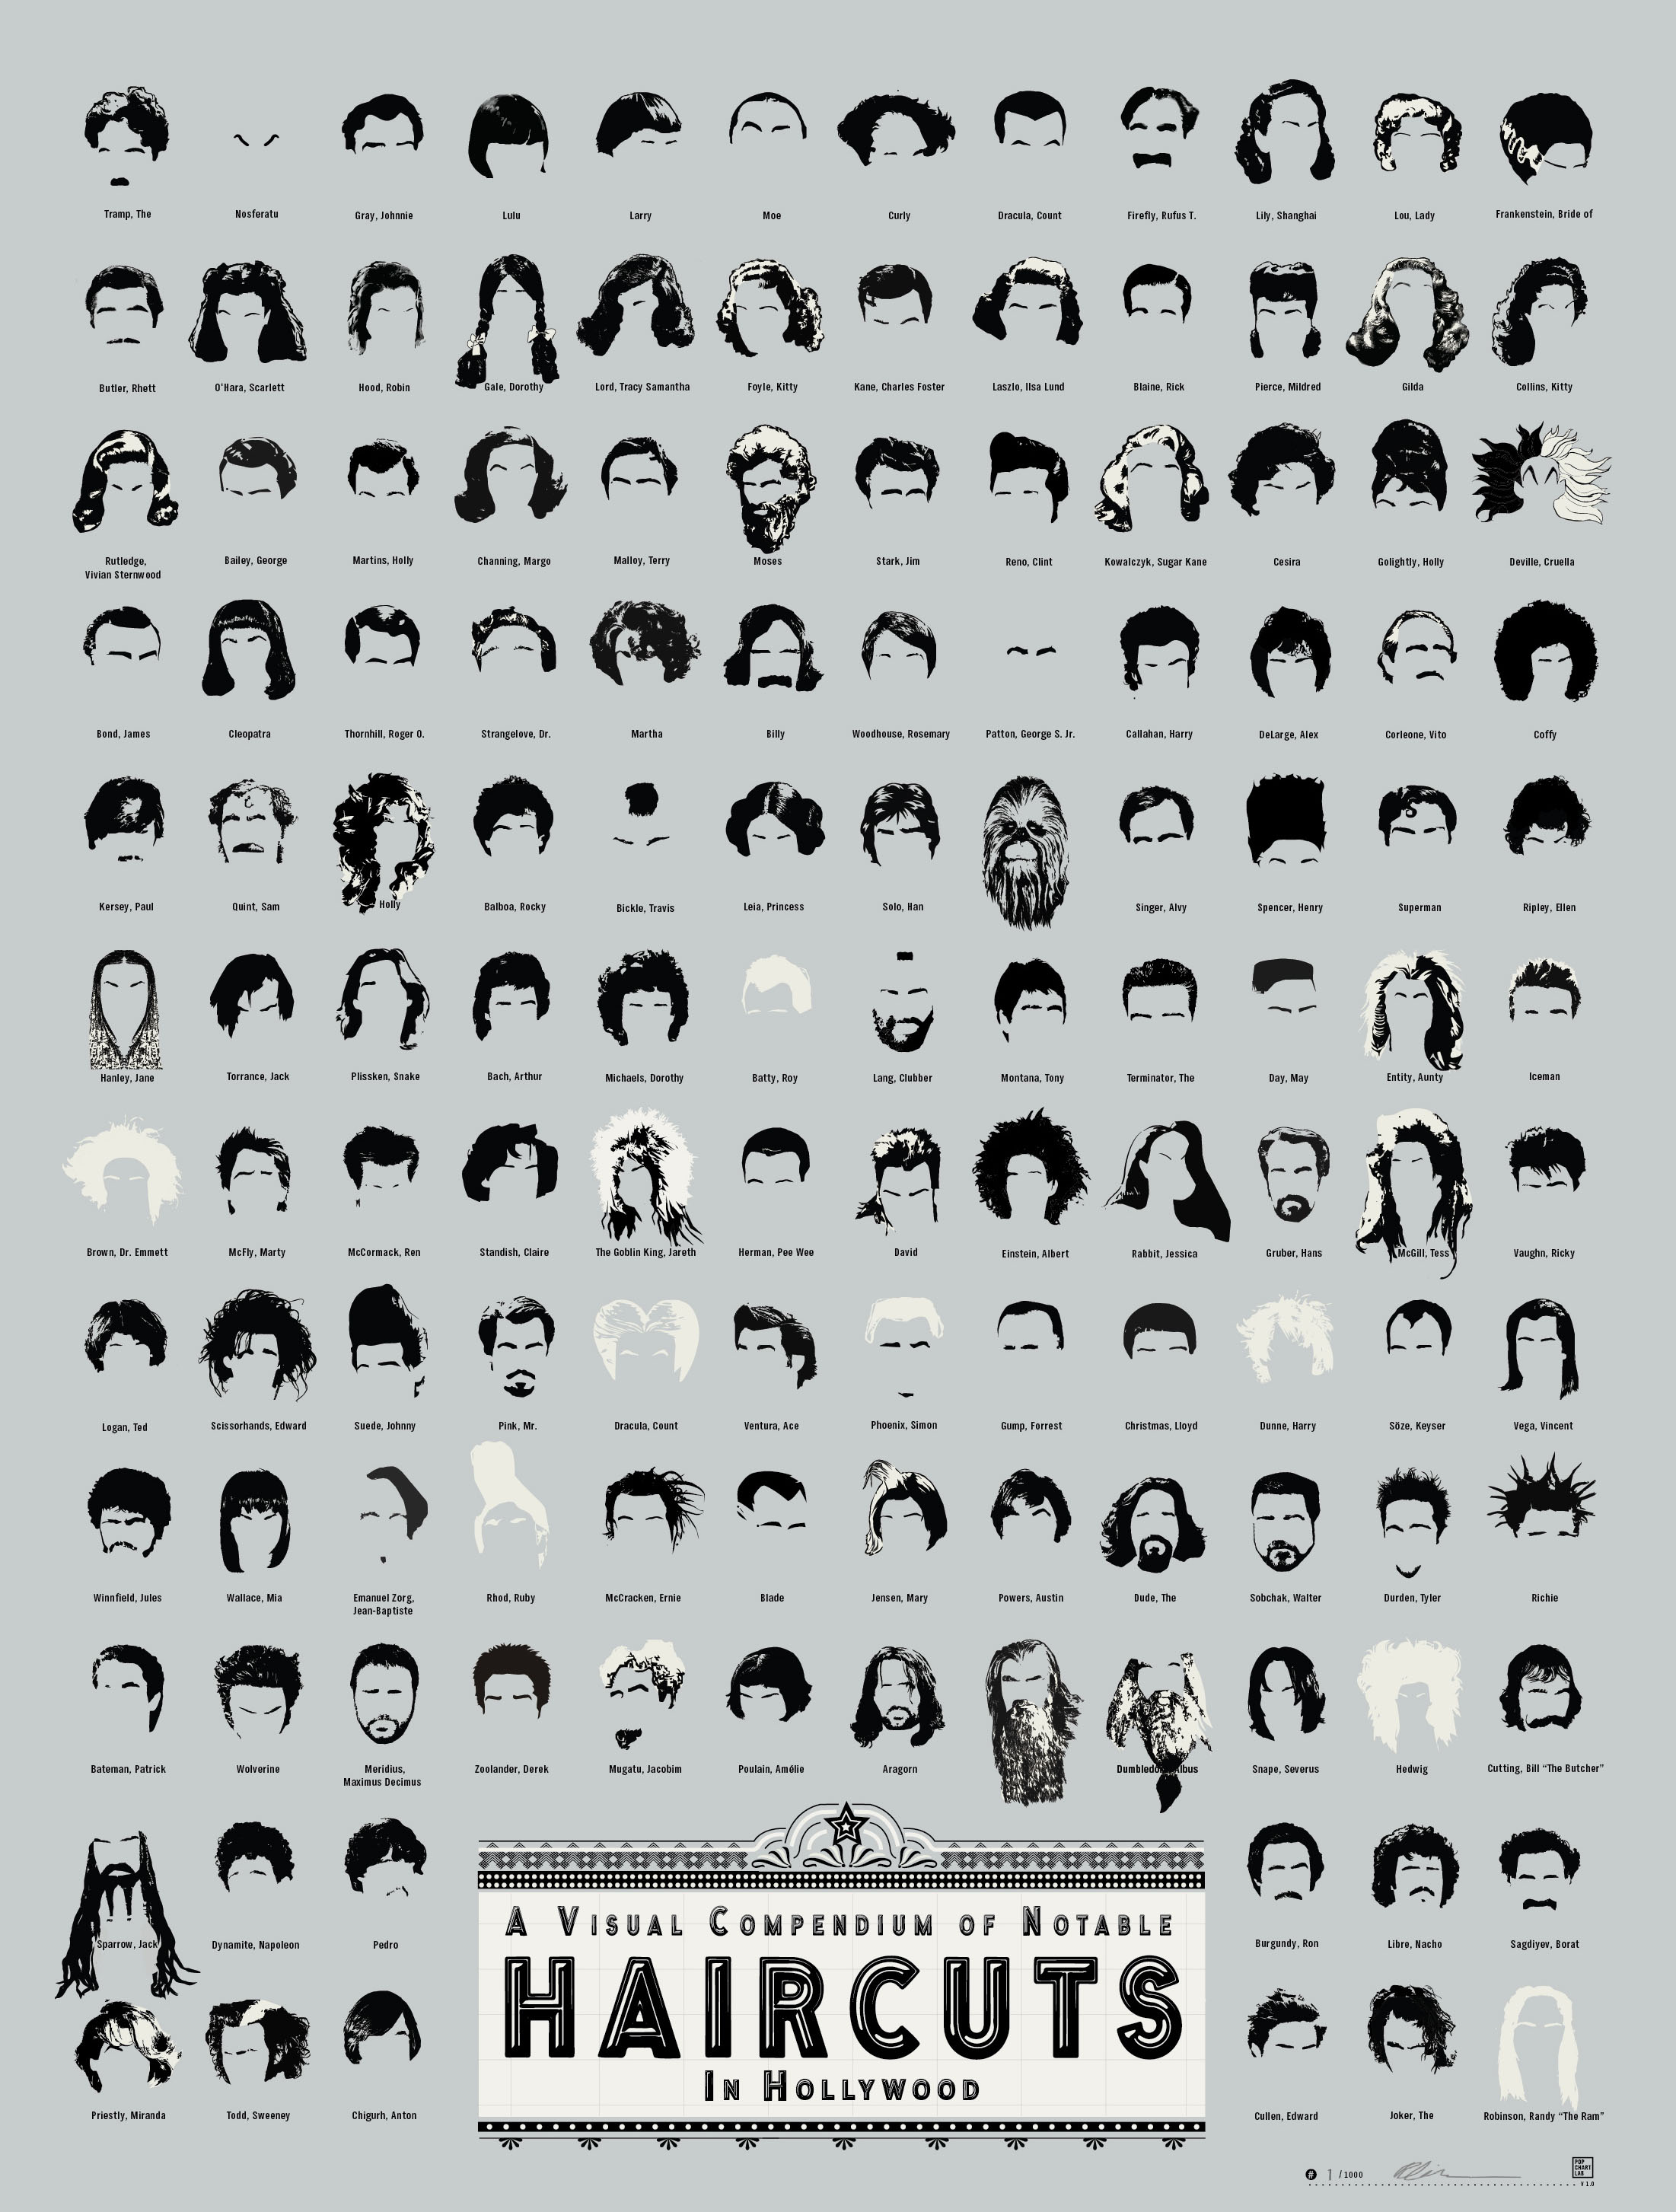 132 Infamous Haircuts Of Hollywood Designtaxi